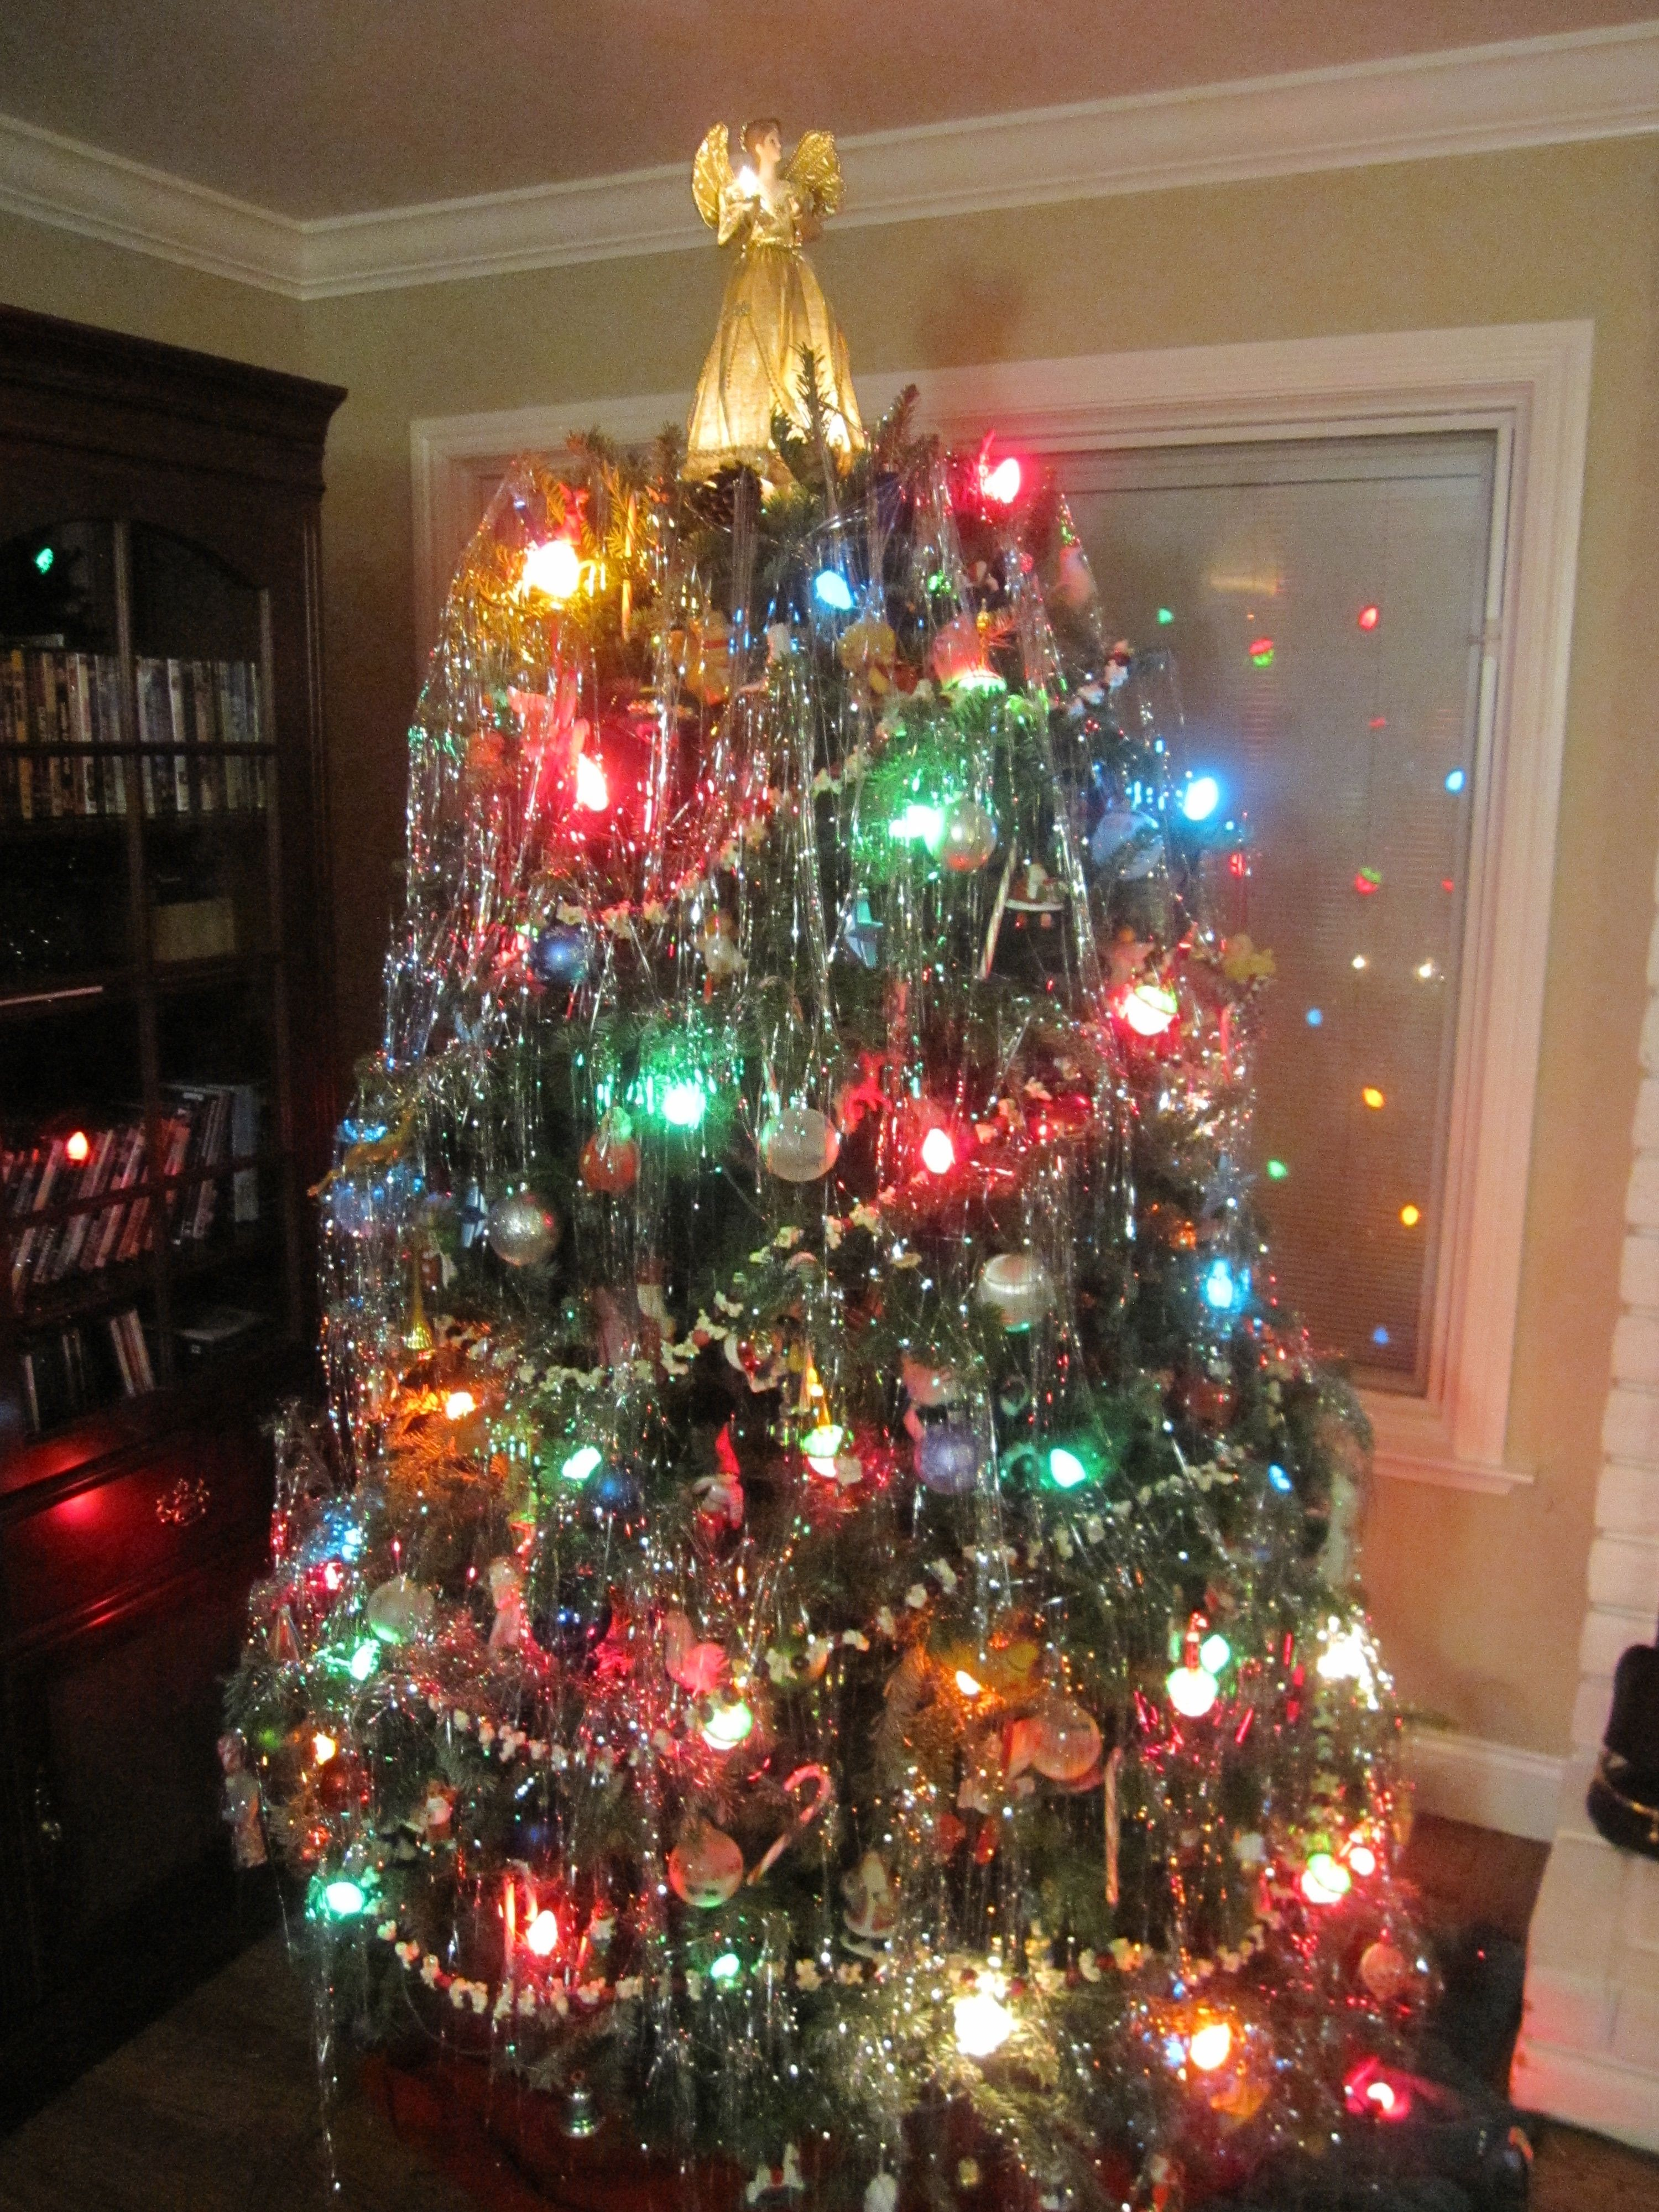 Bubble Lights Tinsel Popcorn And Cranberry Garland Christmas Doesn T Get Much Better Than This Christmas Aesthetic Christmas Vintage Christmas Tree